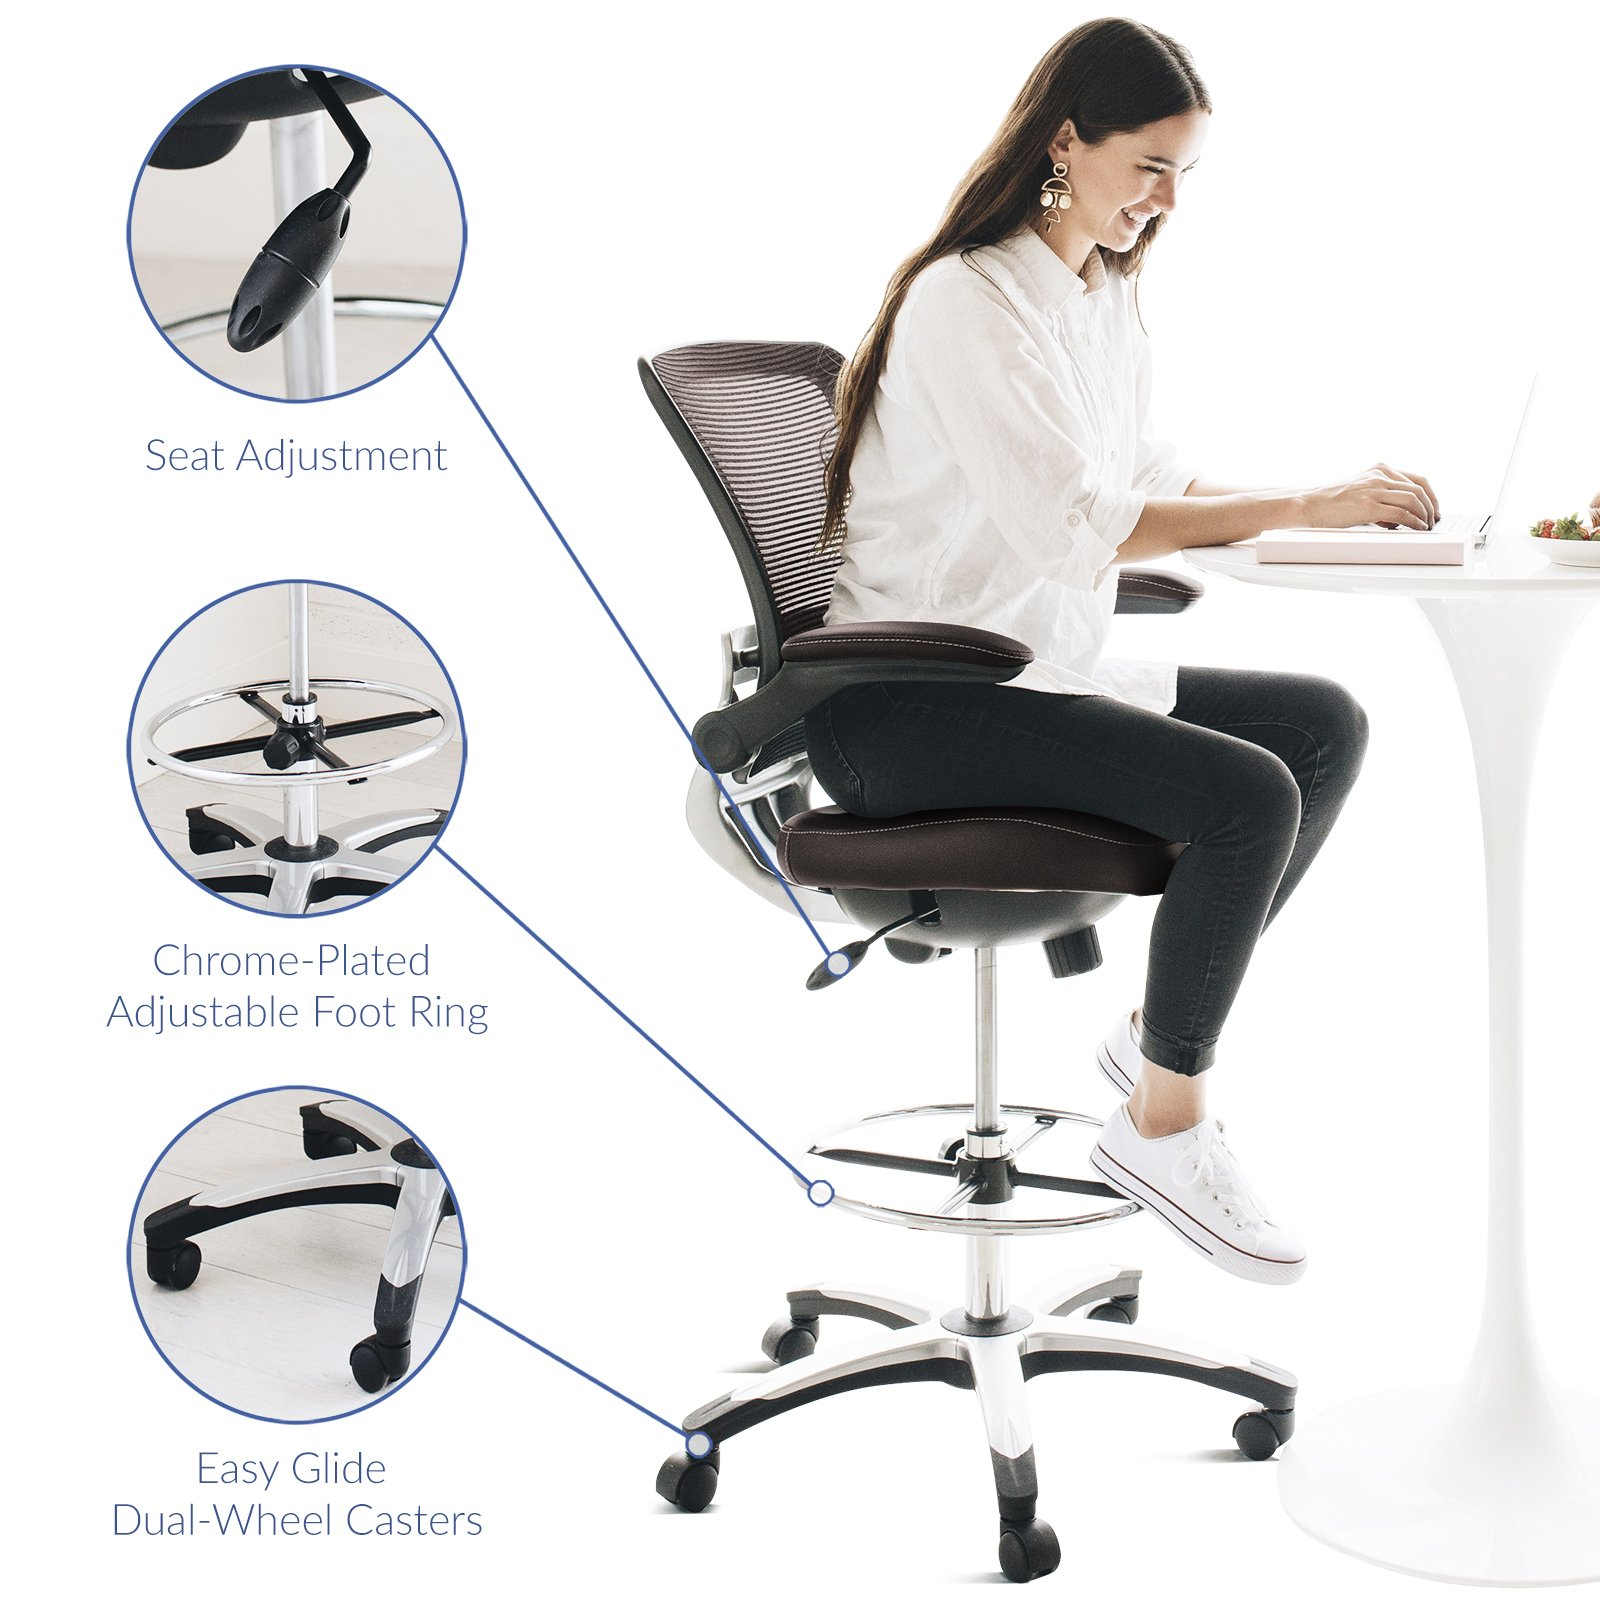 Modway Edge Drafting Chair In Brown - Reception Desk Chair - Tall Office Chair For Adjustable Standing Desks - Flip-Up Arm Drafting Table Chair by Modway (Image #5)